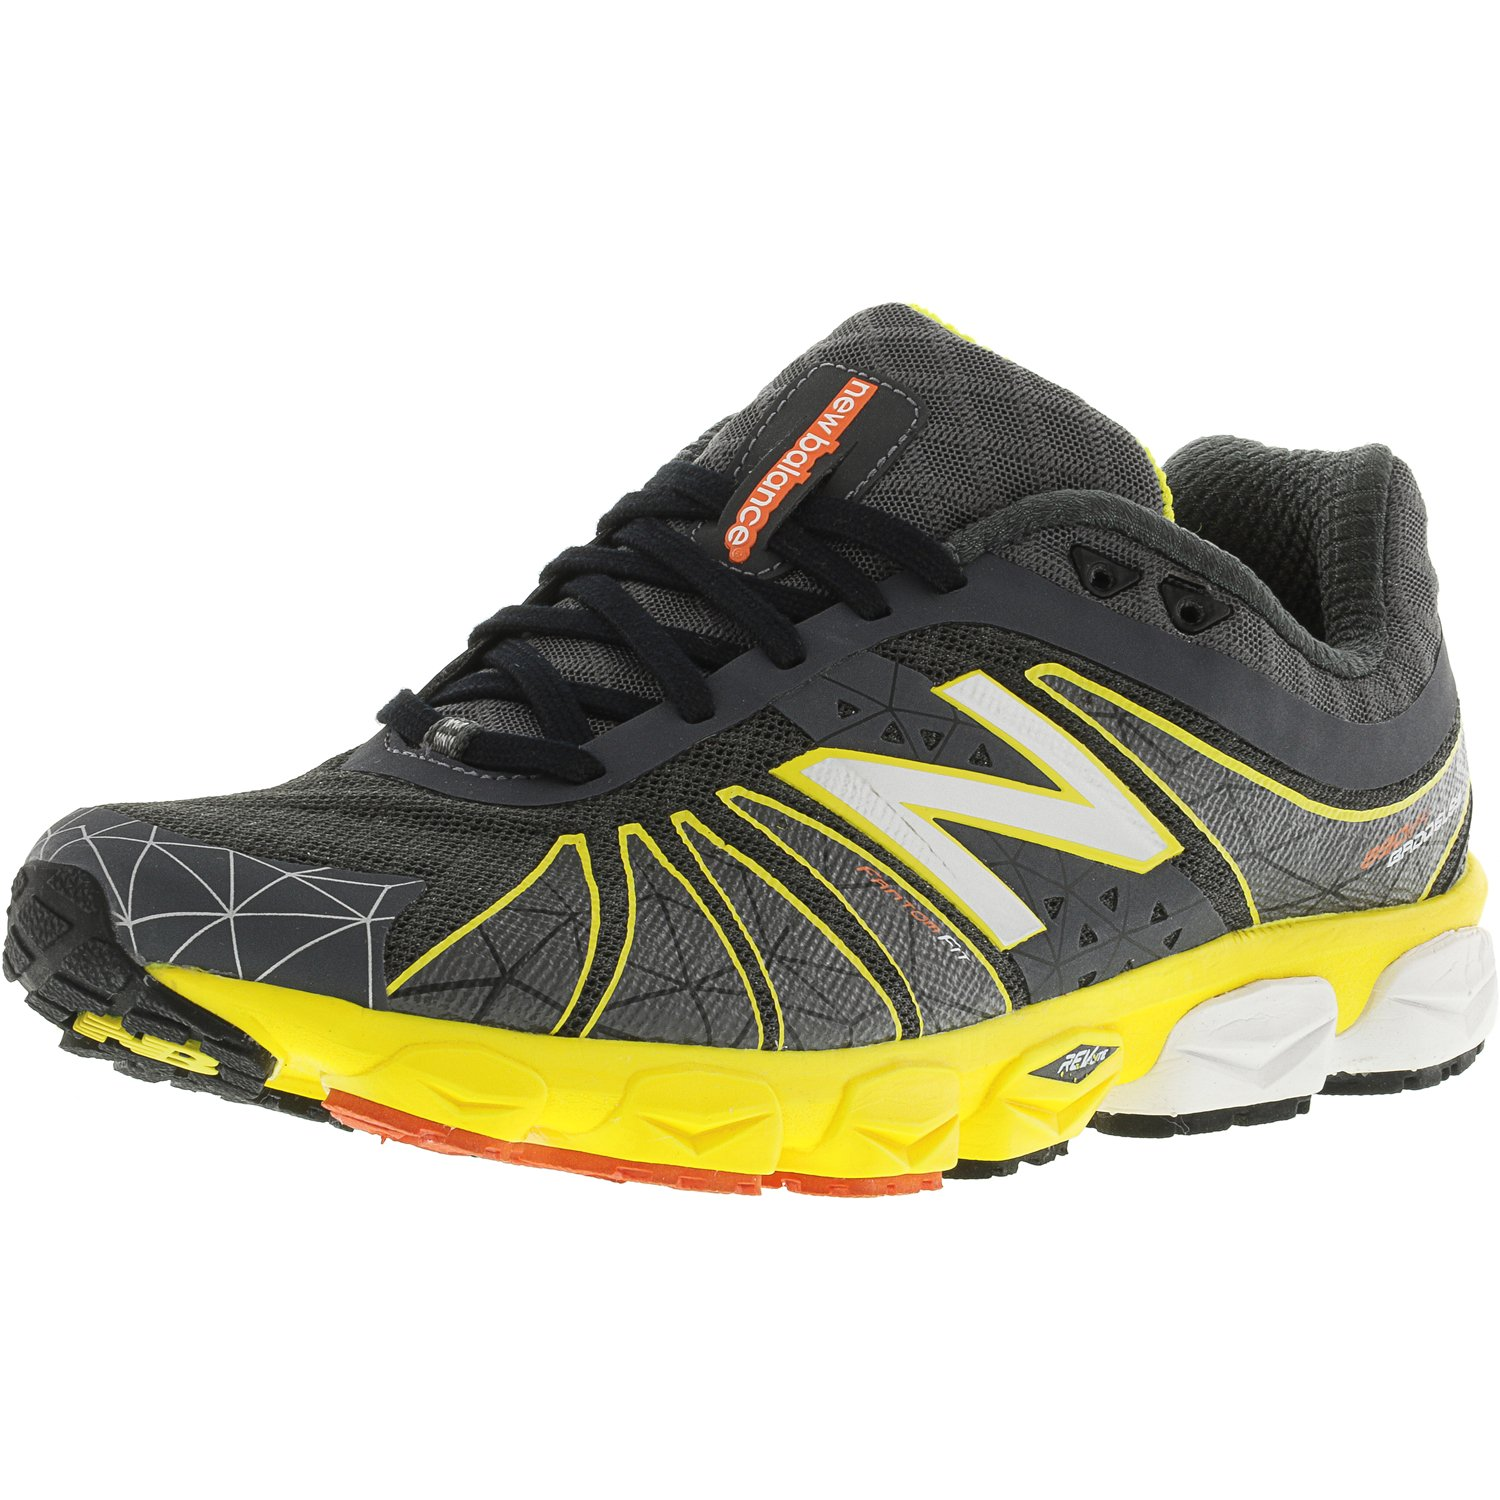 New Balance Men's M890 Gy4 Ankle-High Running Shoe - 7W